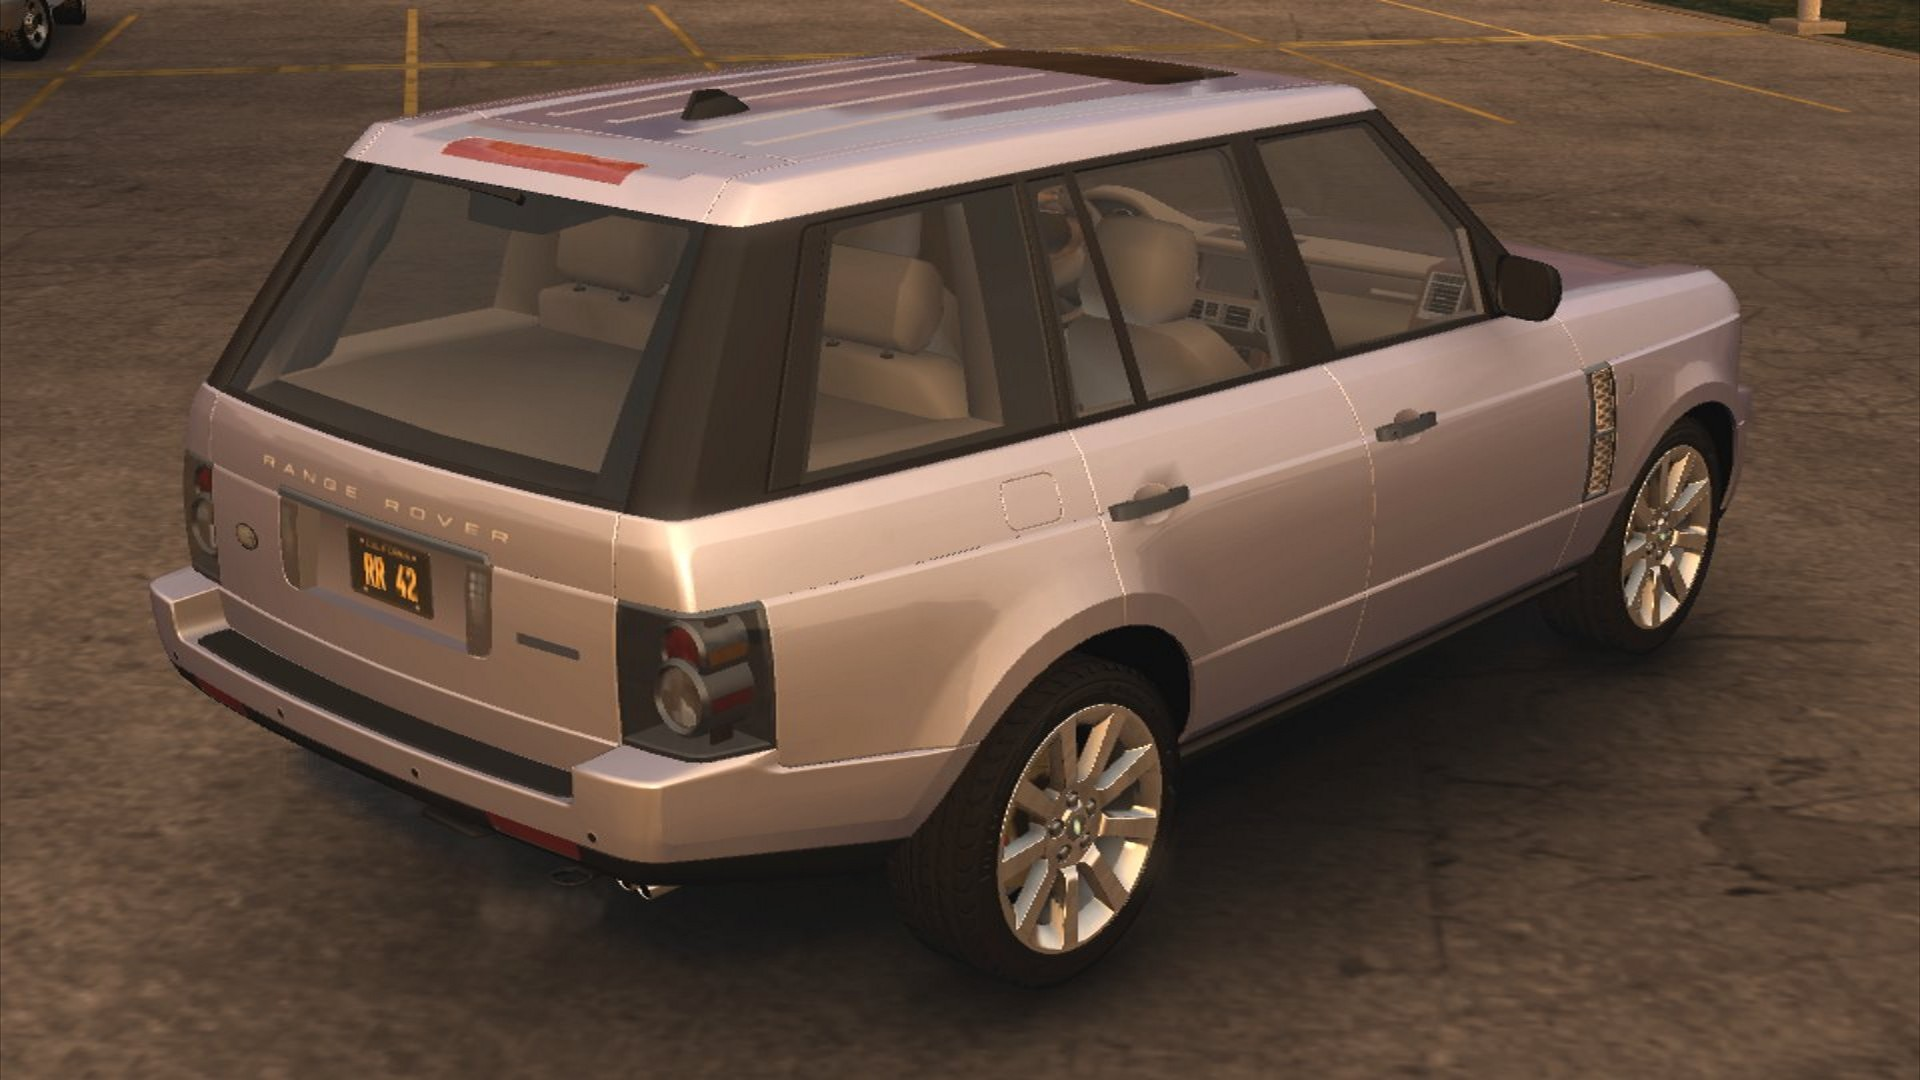 Image Range Rover 4 2 Supercharged rear